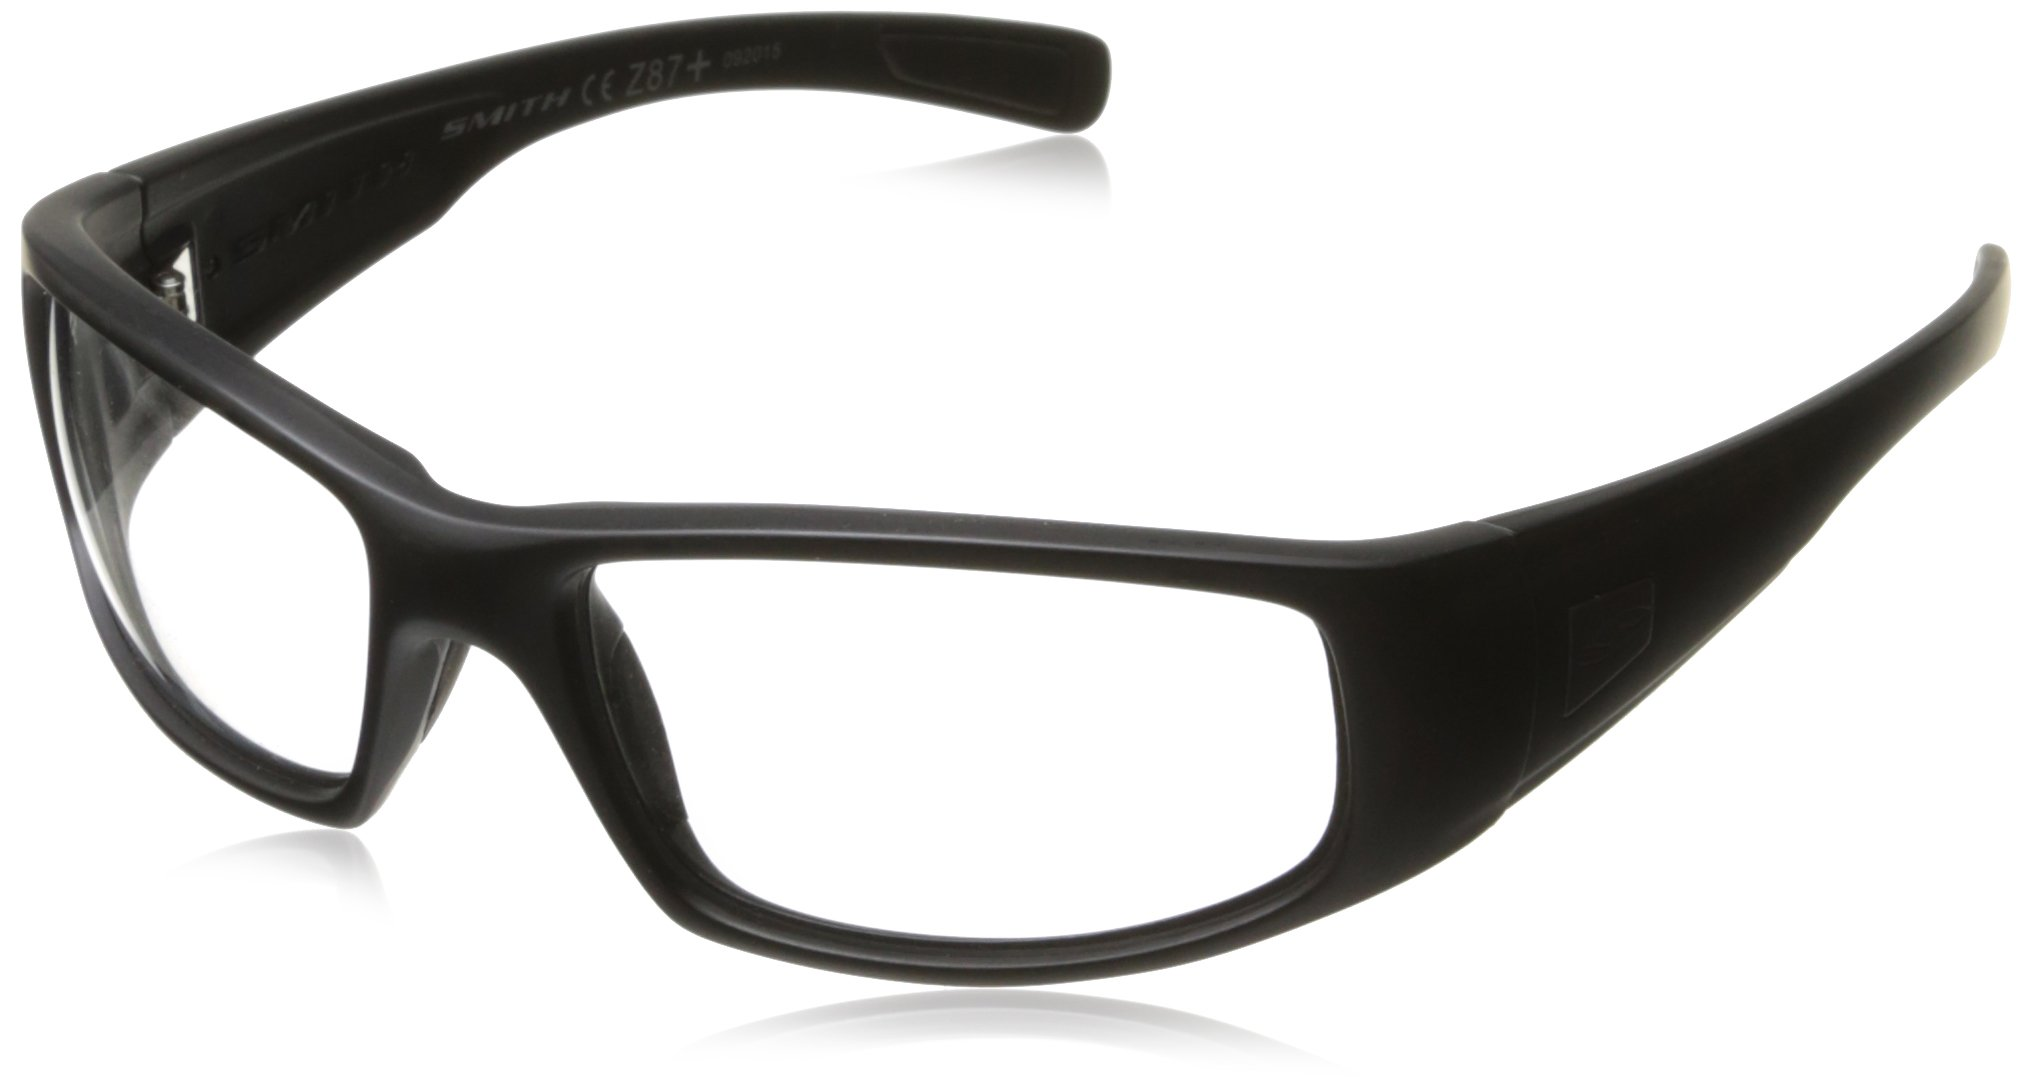 4cc7e3d15d Amazon.com   Smith Optics Hideout Tactical Sunglass with Black Frame (Clear  Lens)   Airsoft Goggles   Sports   Outdoors